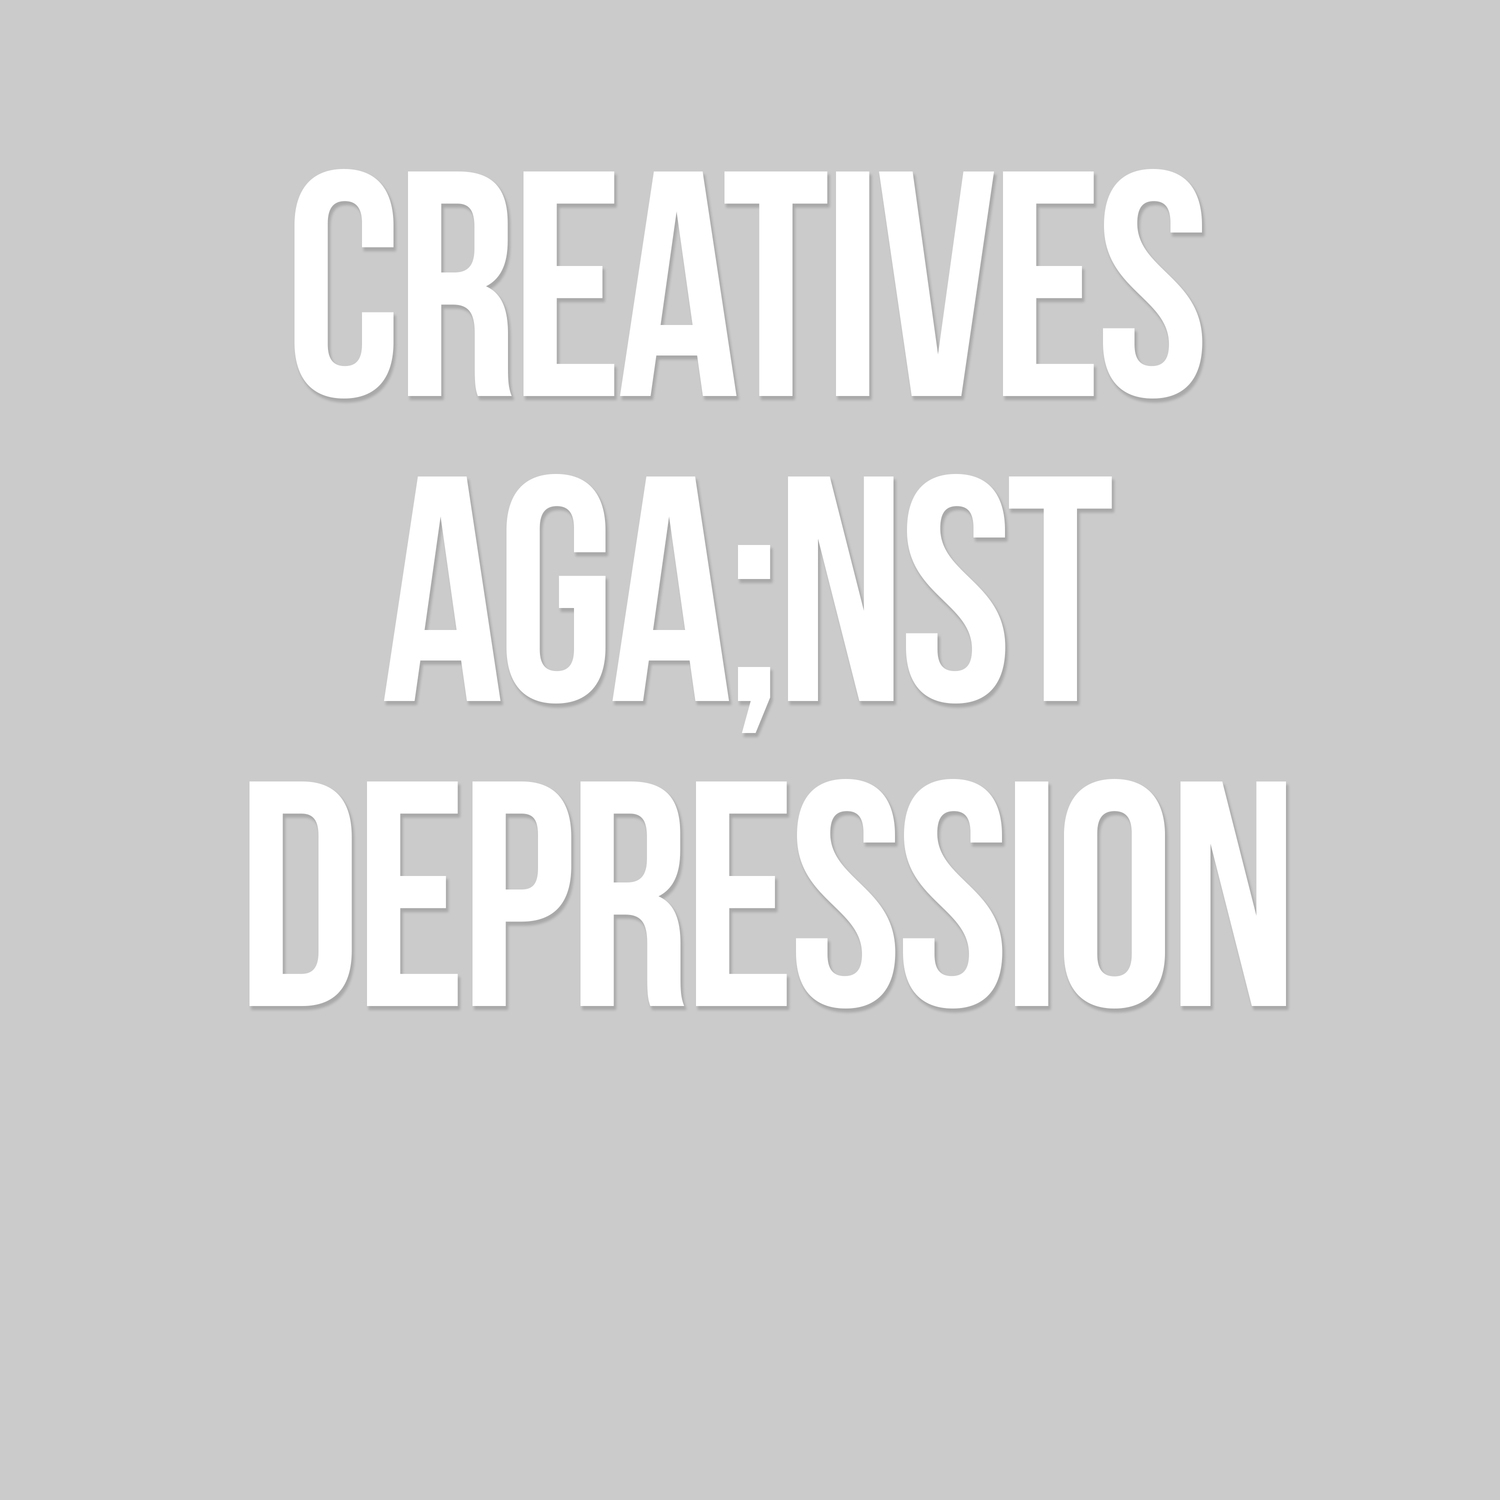 Creatives Aga;nst Depression